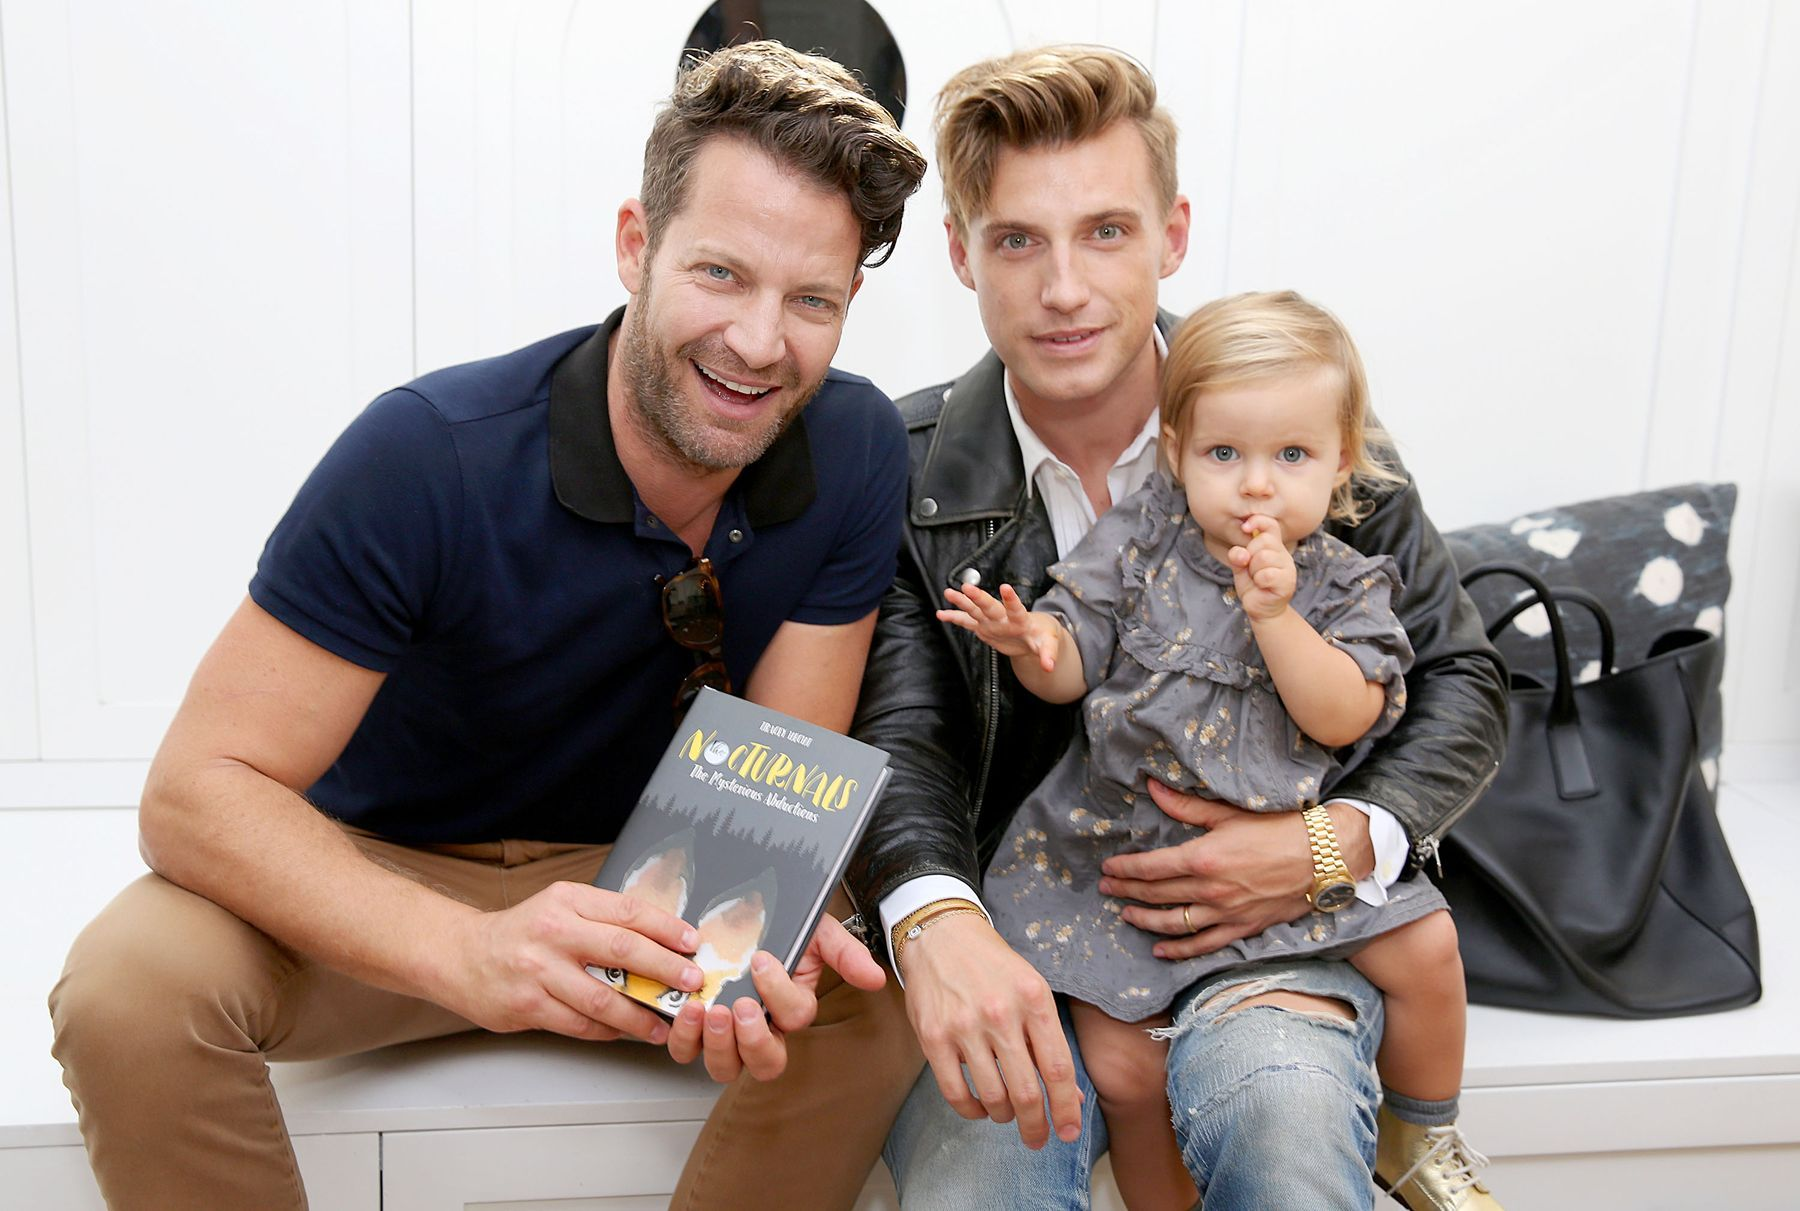 Nate Berkus And Jeremiah Brent Invite Viewers Into Their Home In